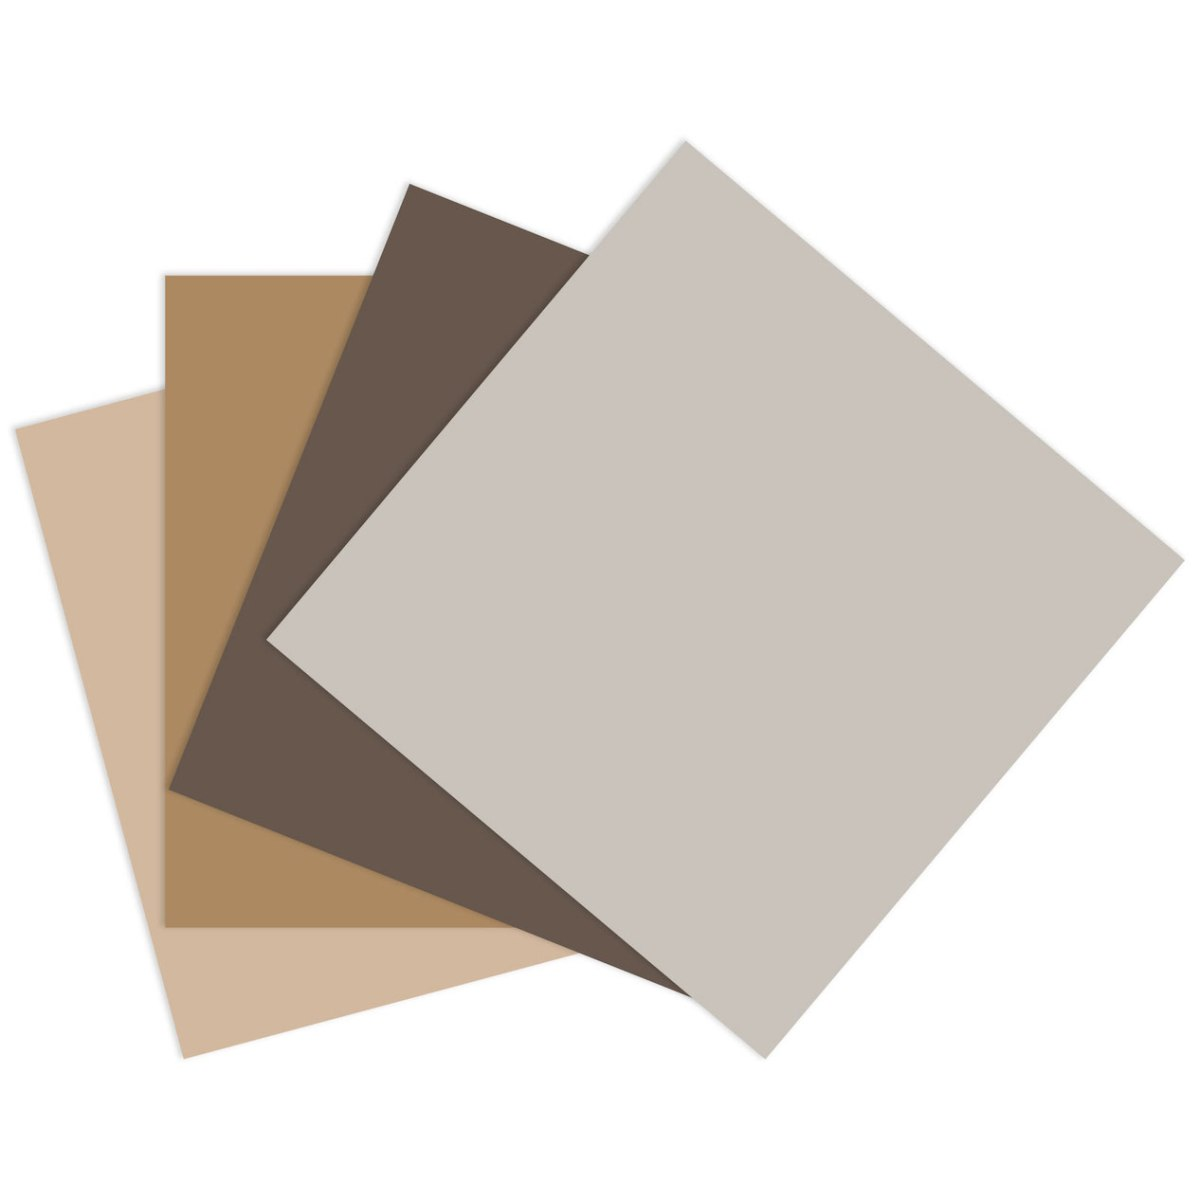 Cardstock Carnival #ctmh #closetomyheart #cardstock #exclusivecolorpalette #exclusivecolourpalatte #ctmhcolors #cmthcolours #brown #neutrals #almond #toffee #espresso #mink